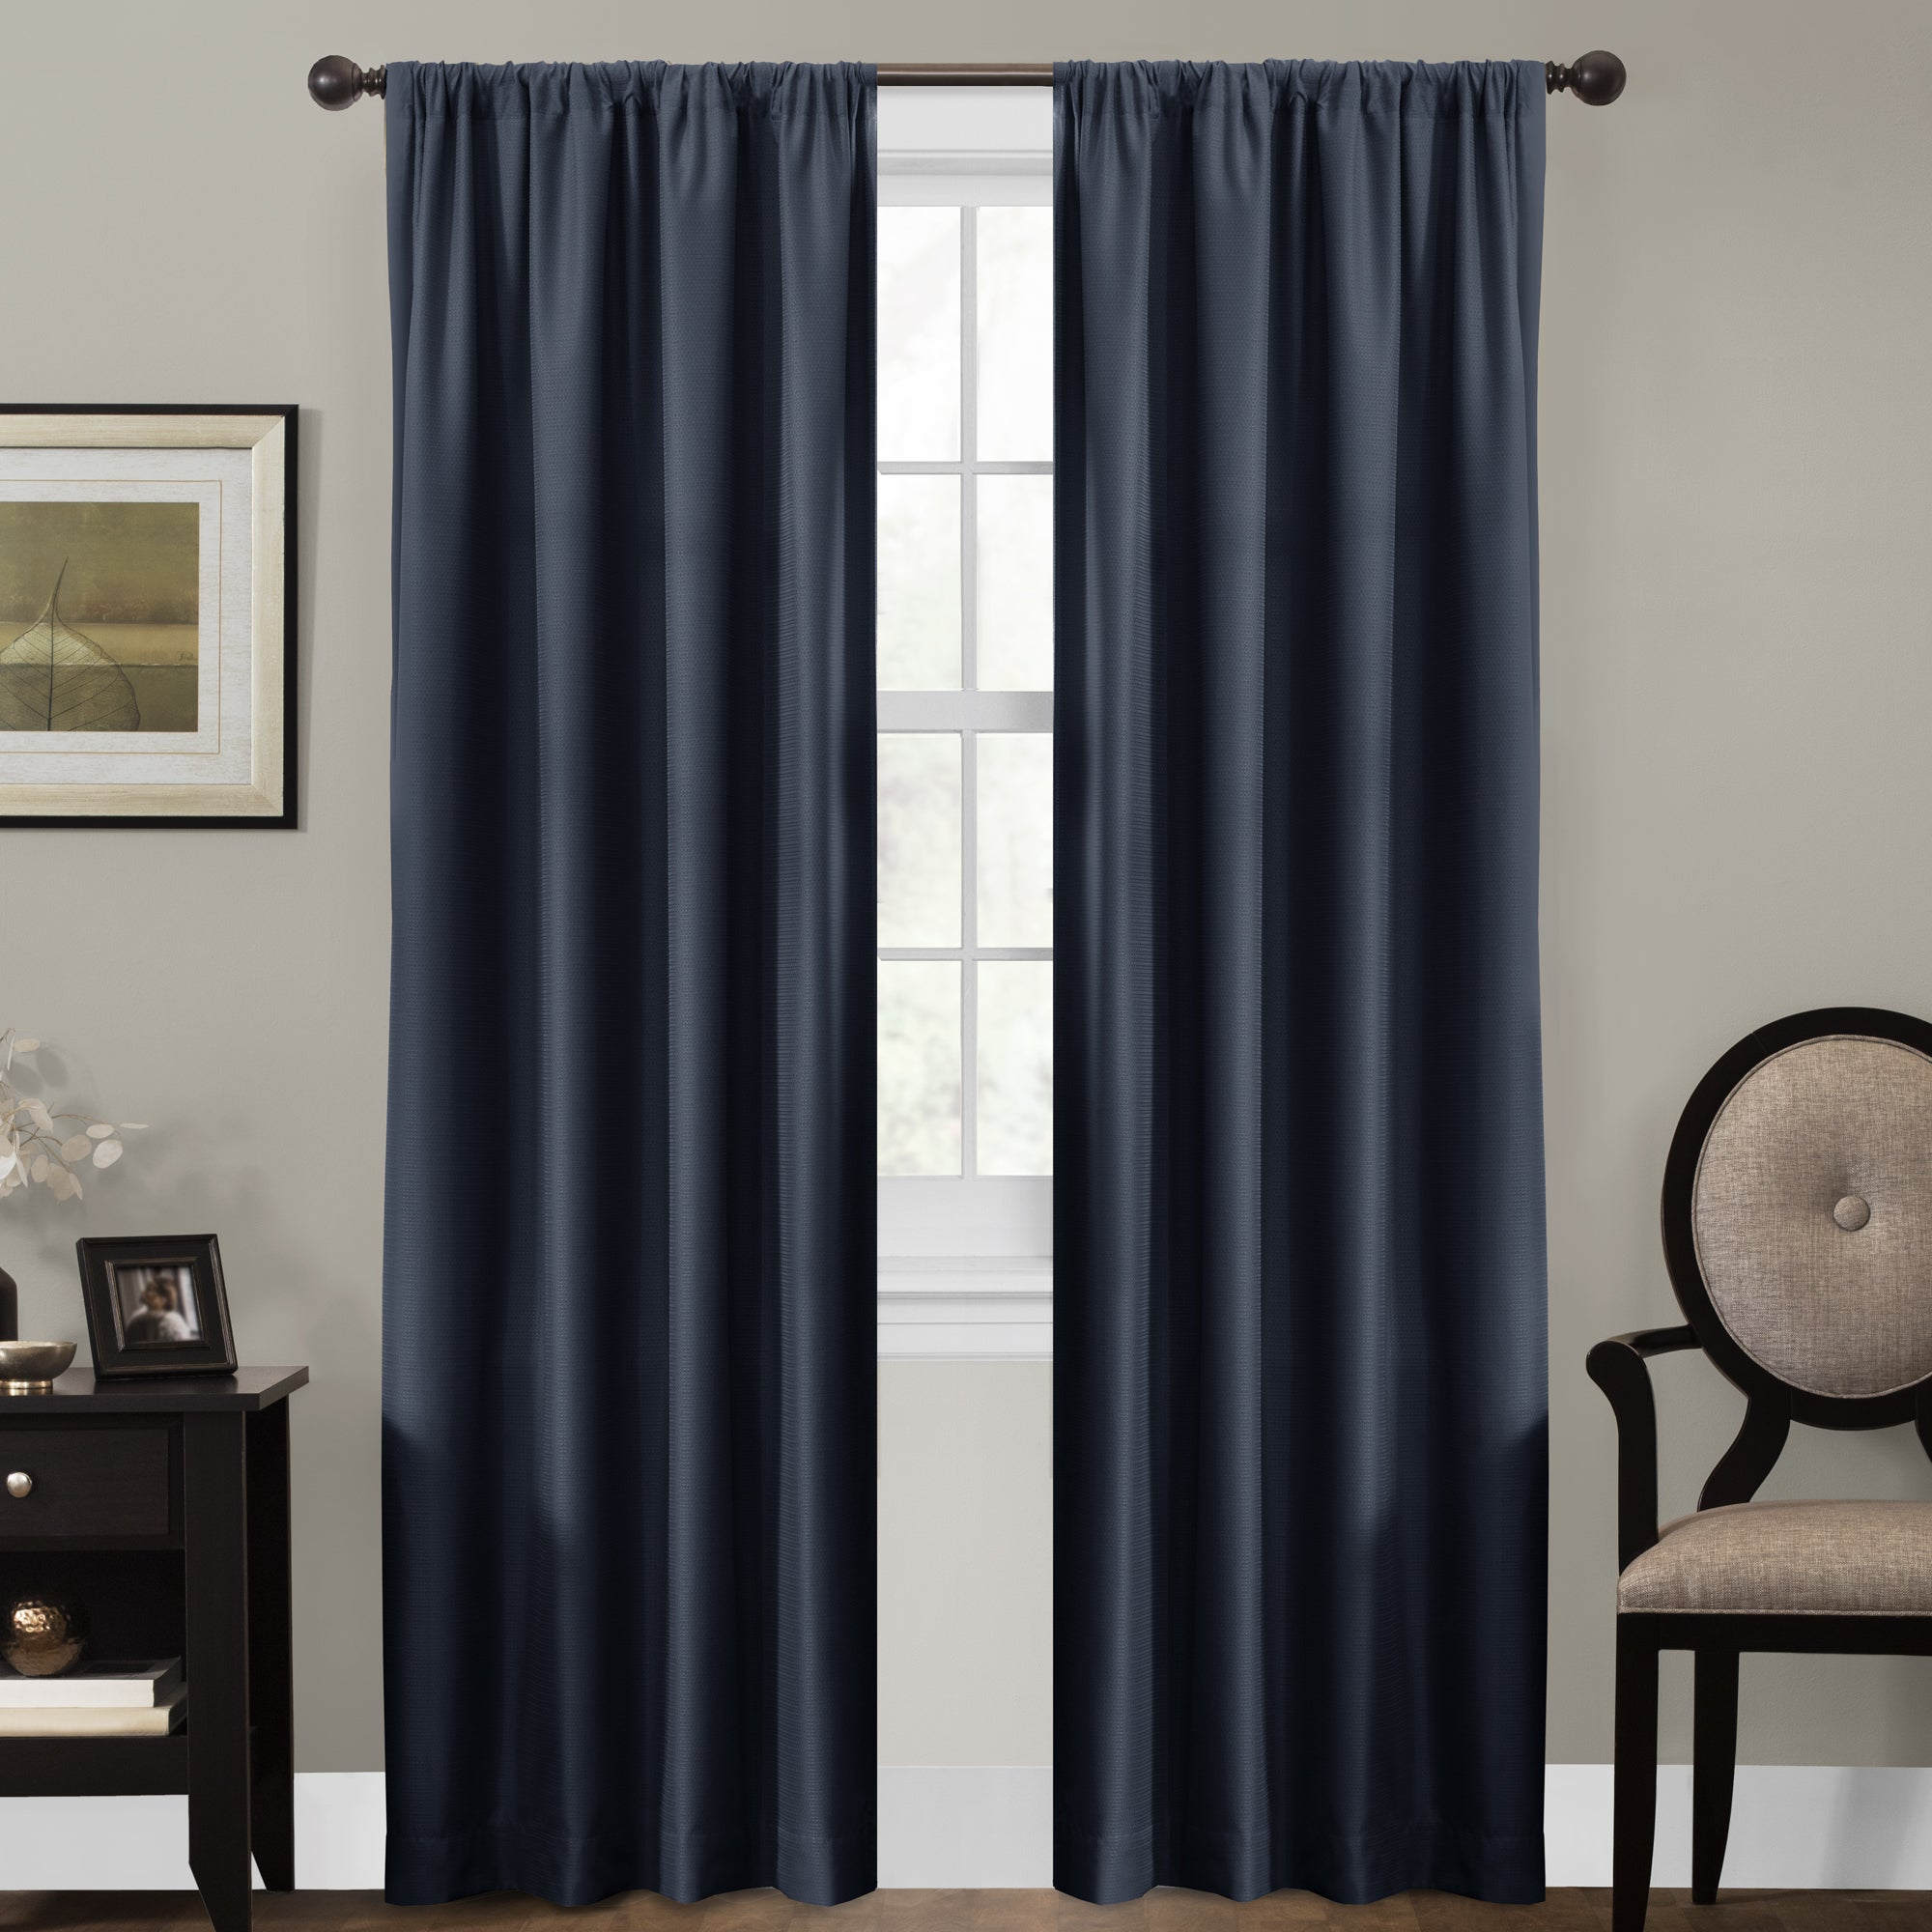 picture 6 of 10 - Smart Curtains